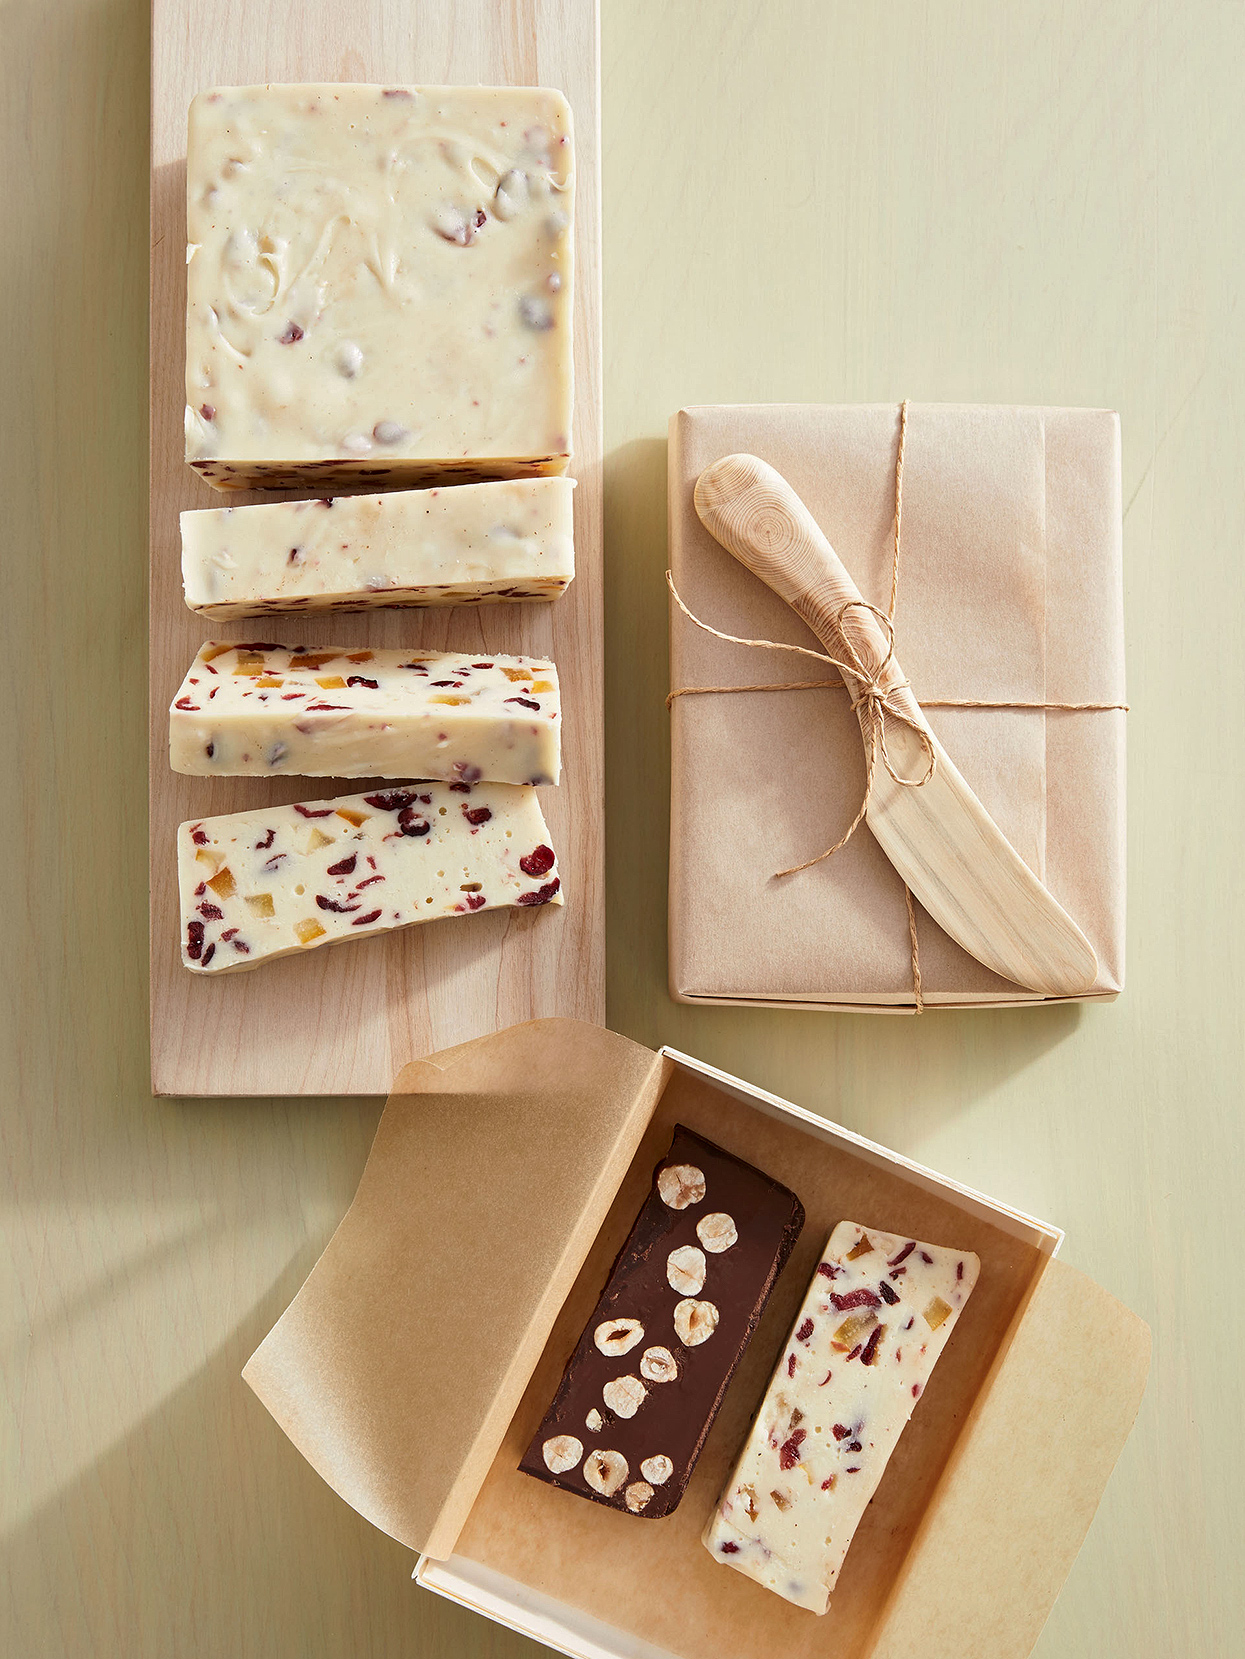 White Chocolate Fudge with Cranberries and Candied Citrus